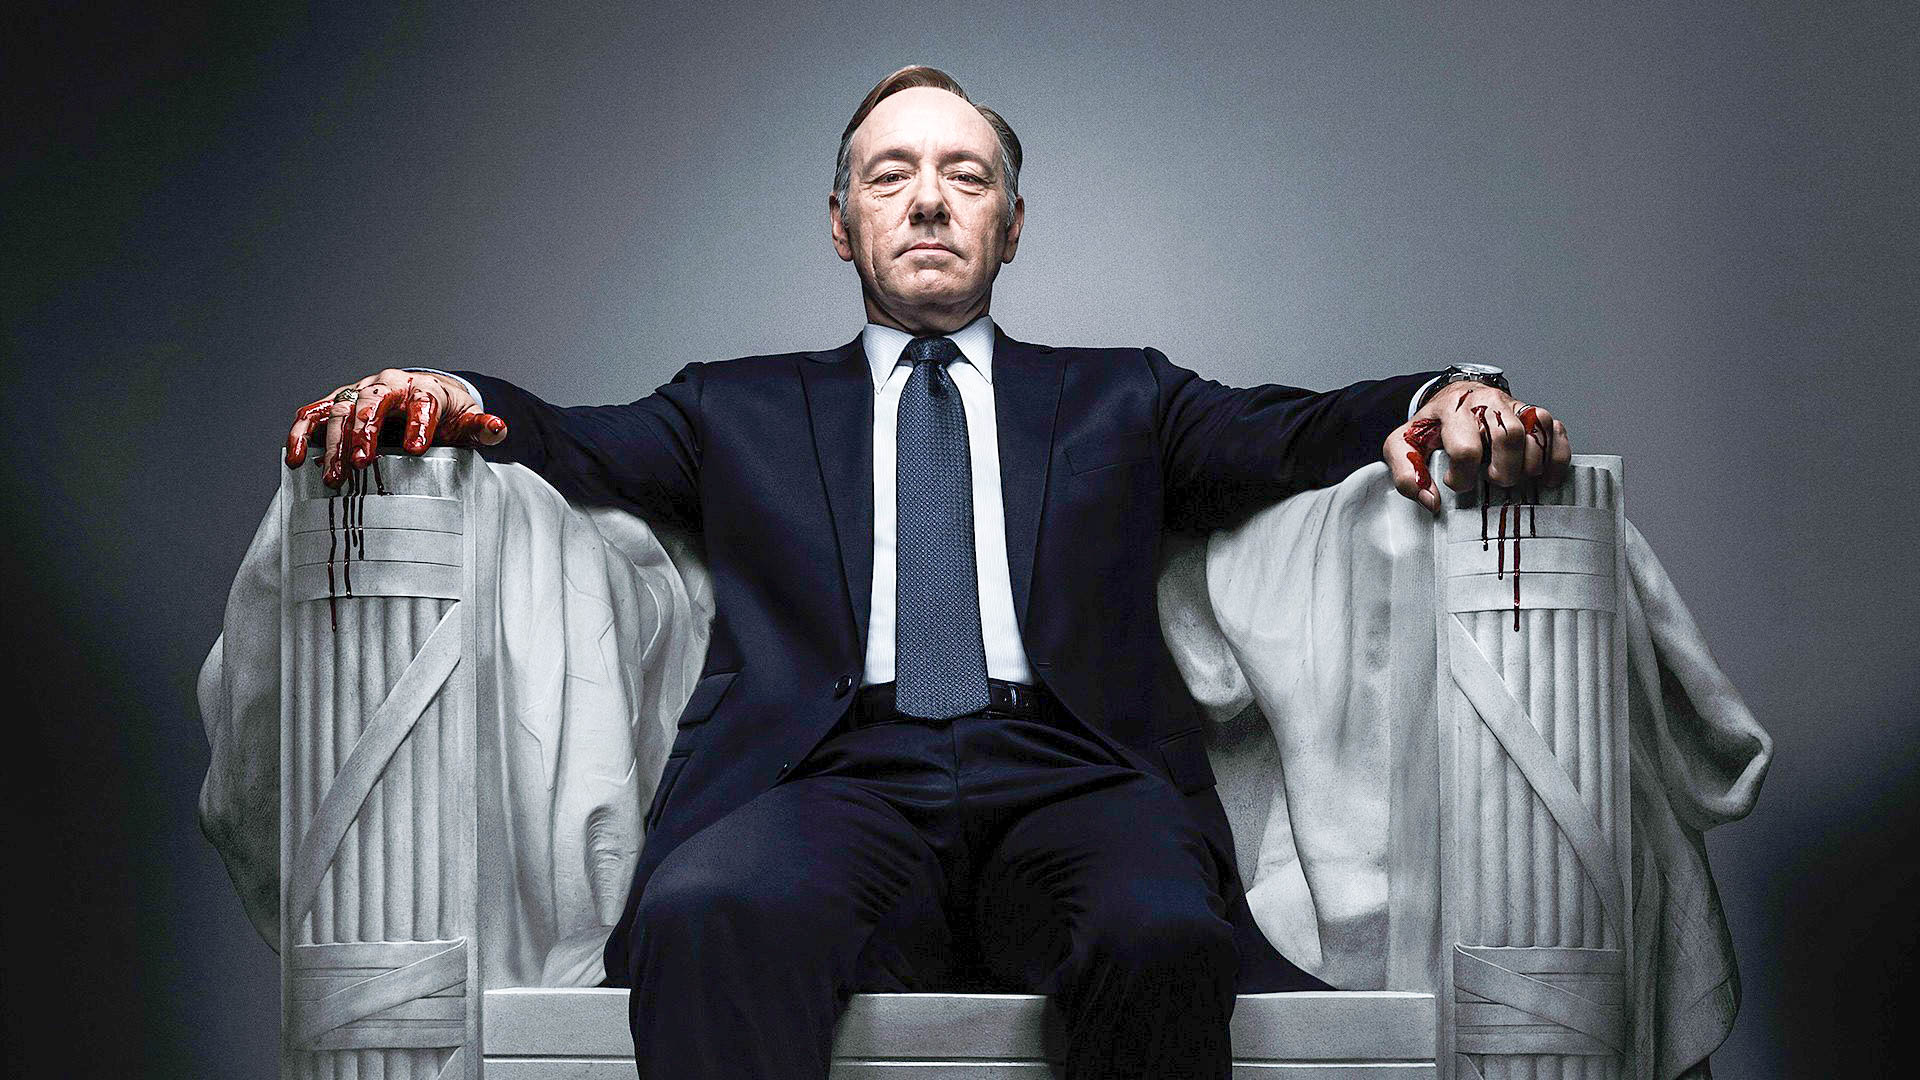 House Of Cards Amazing Hd Pictures Images Wallpapers High